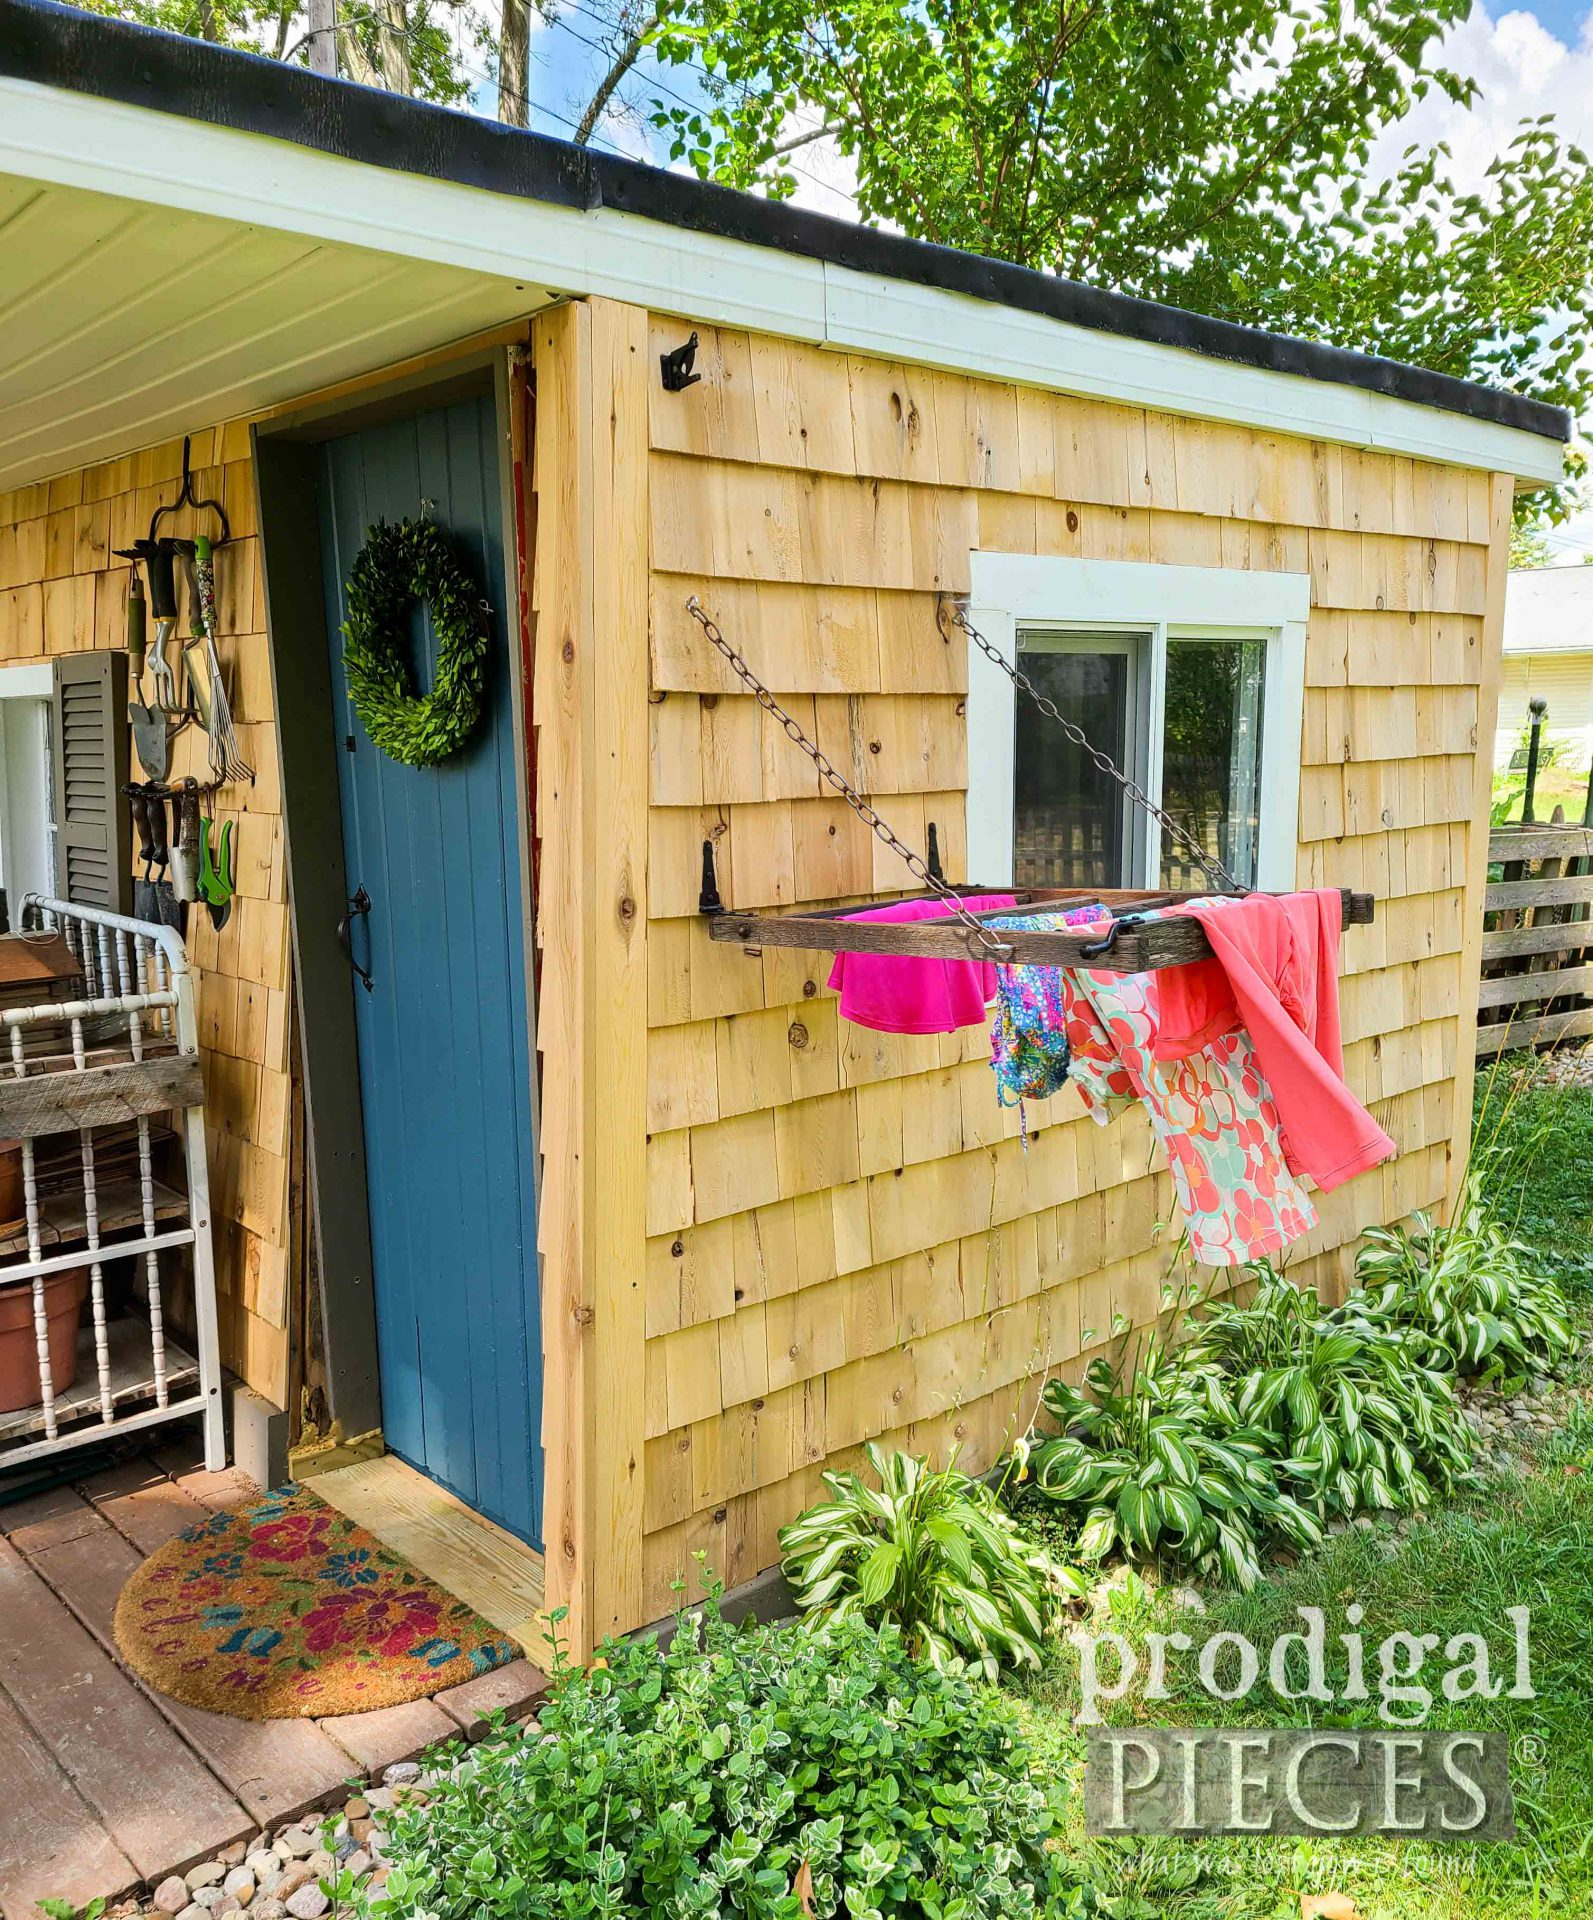 Towel Drying Rack on Shed by Prodigal Pieces | prodigalpieces.com #prodigalpieces #garden #diy